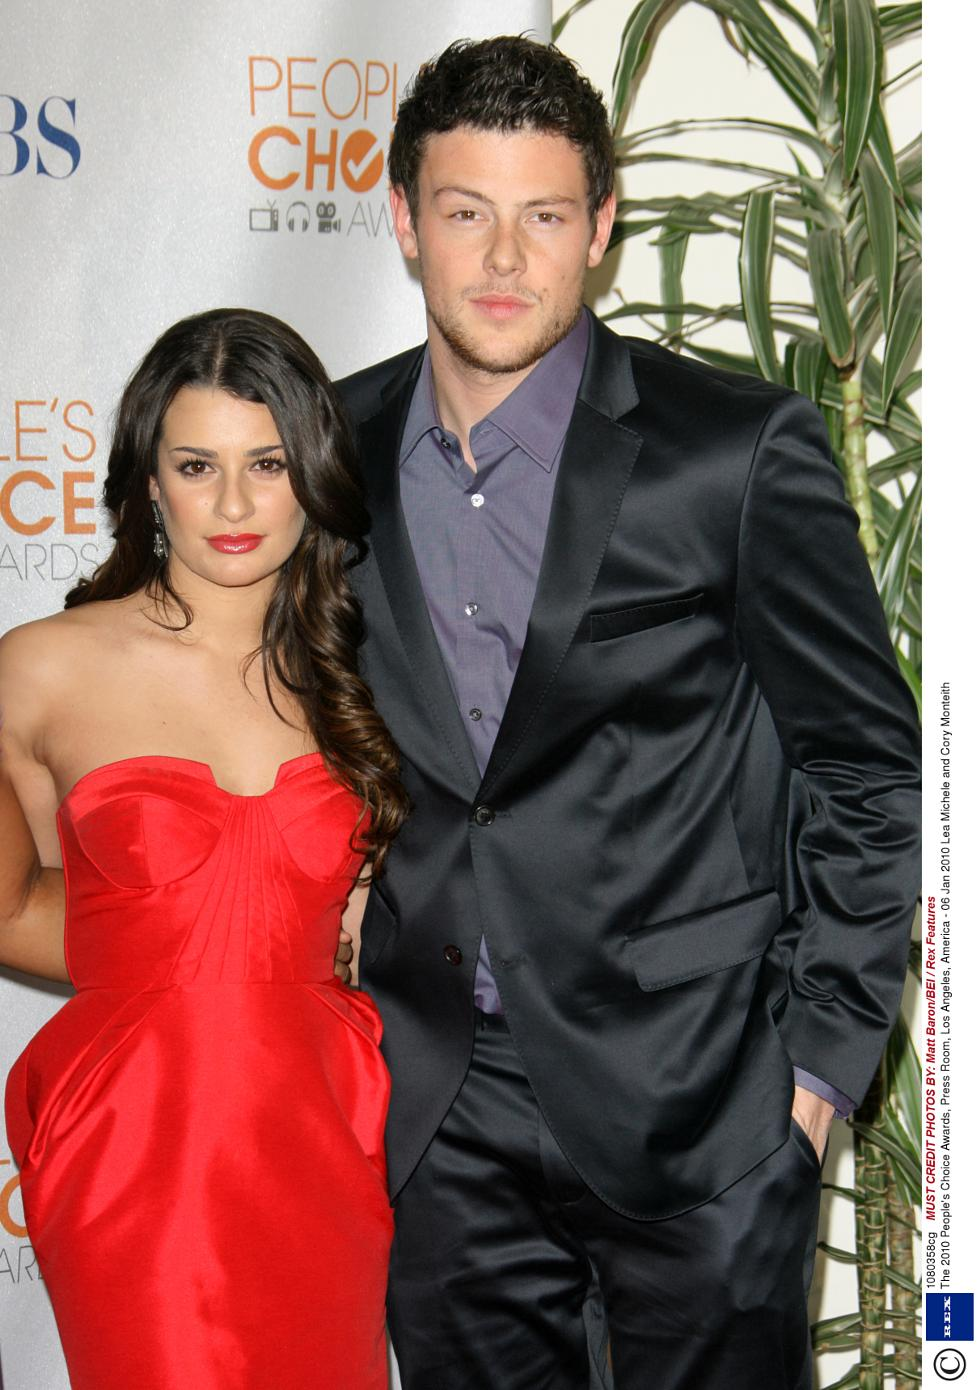 Lea Michele admits she dated 'Glee' co-star Matthew Morrison